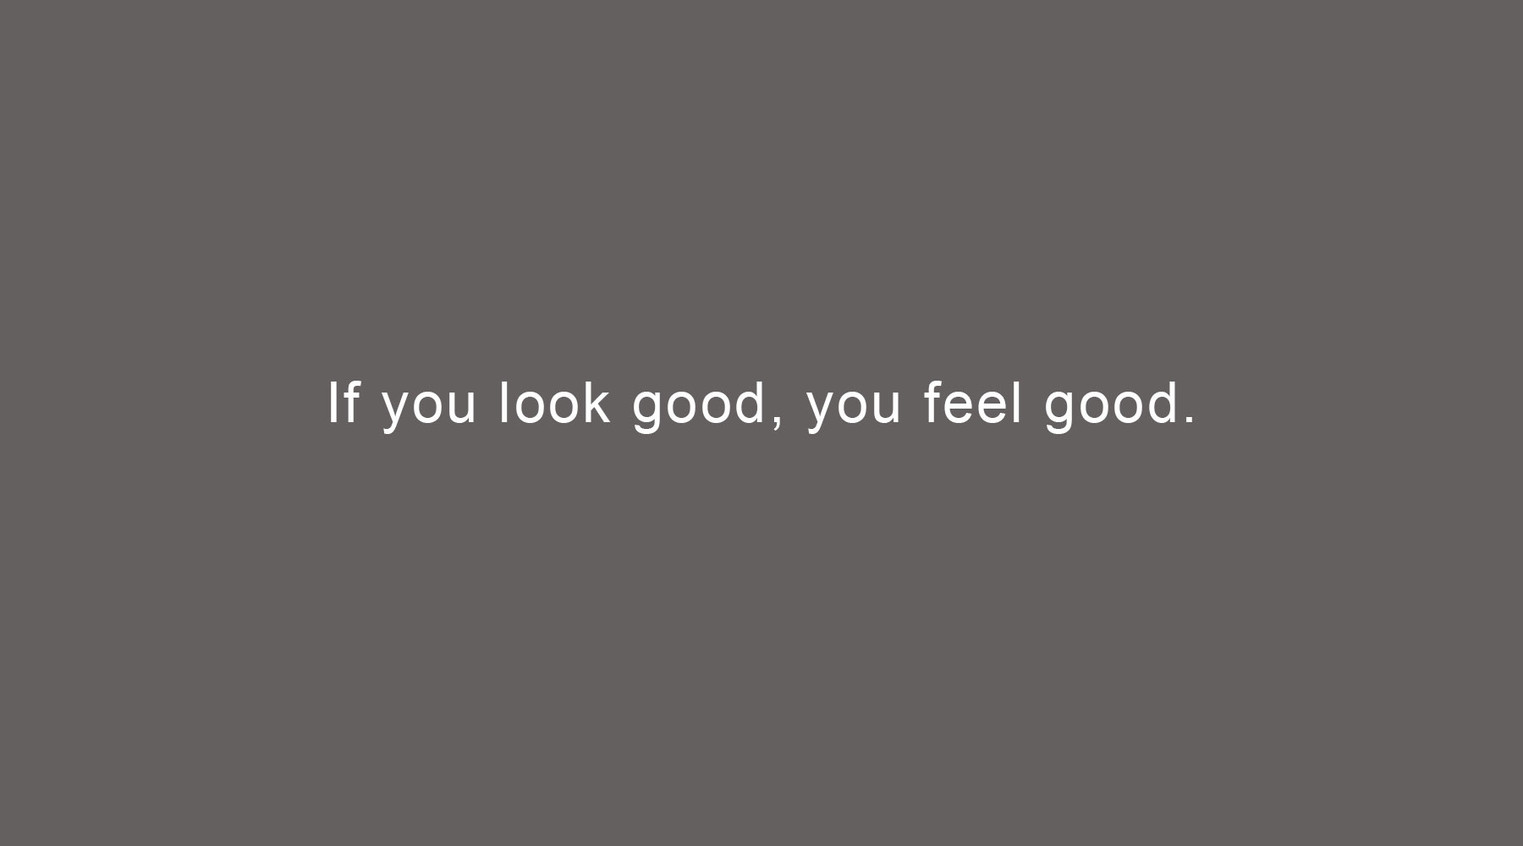 If-you-look-good.jpg